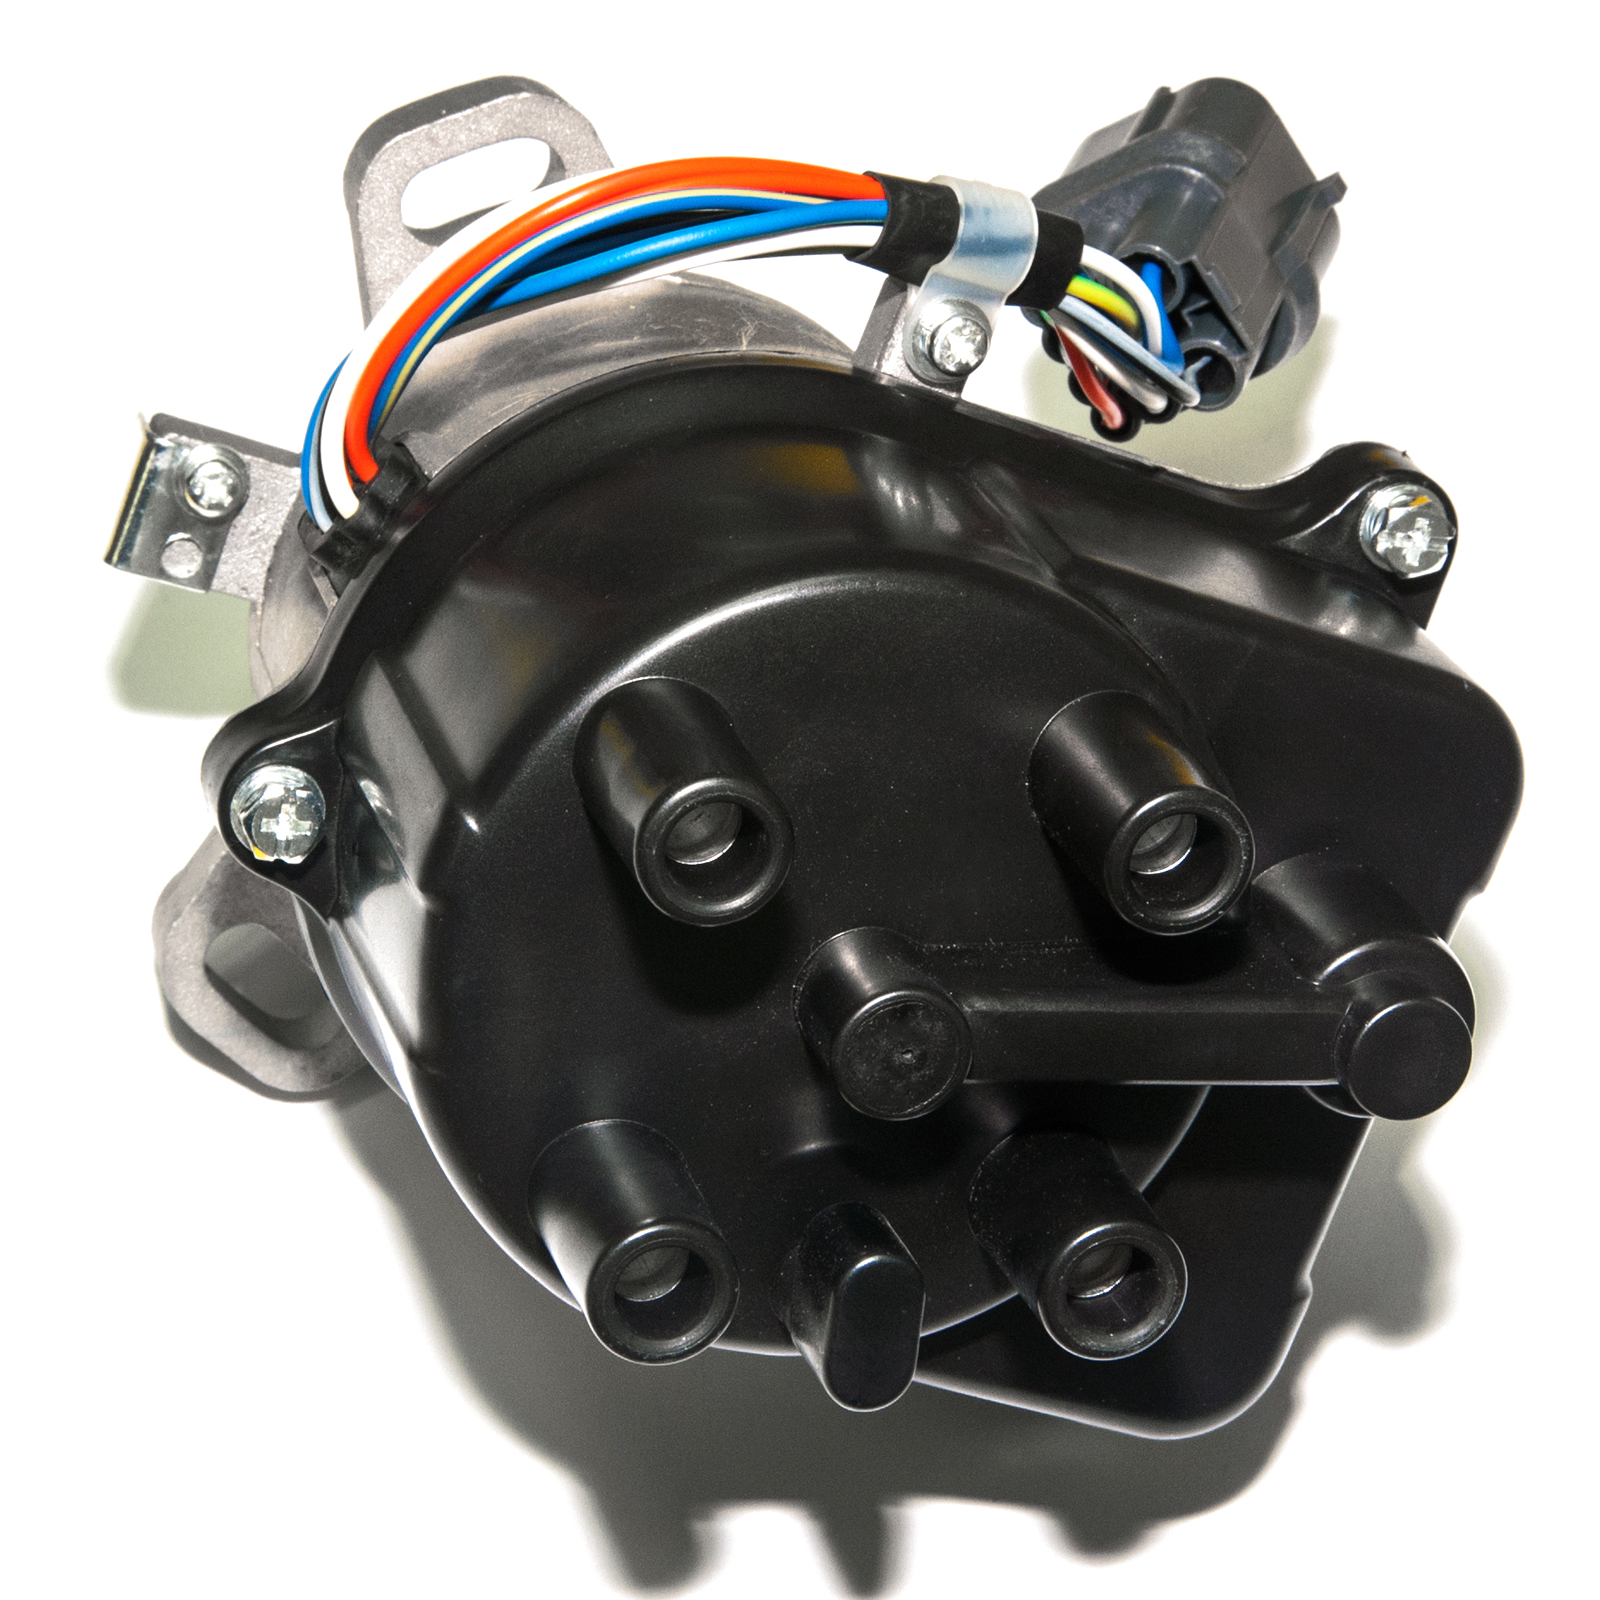 New Ignition Distributor For 1996-2001 Acura Integra LS RS